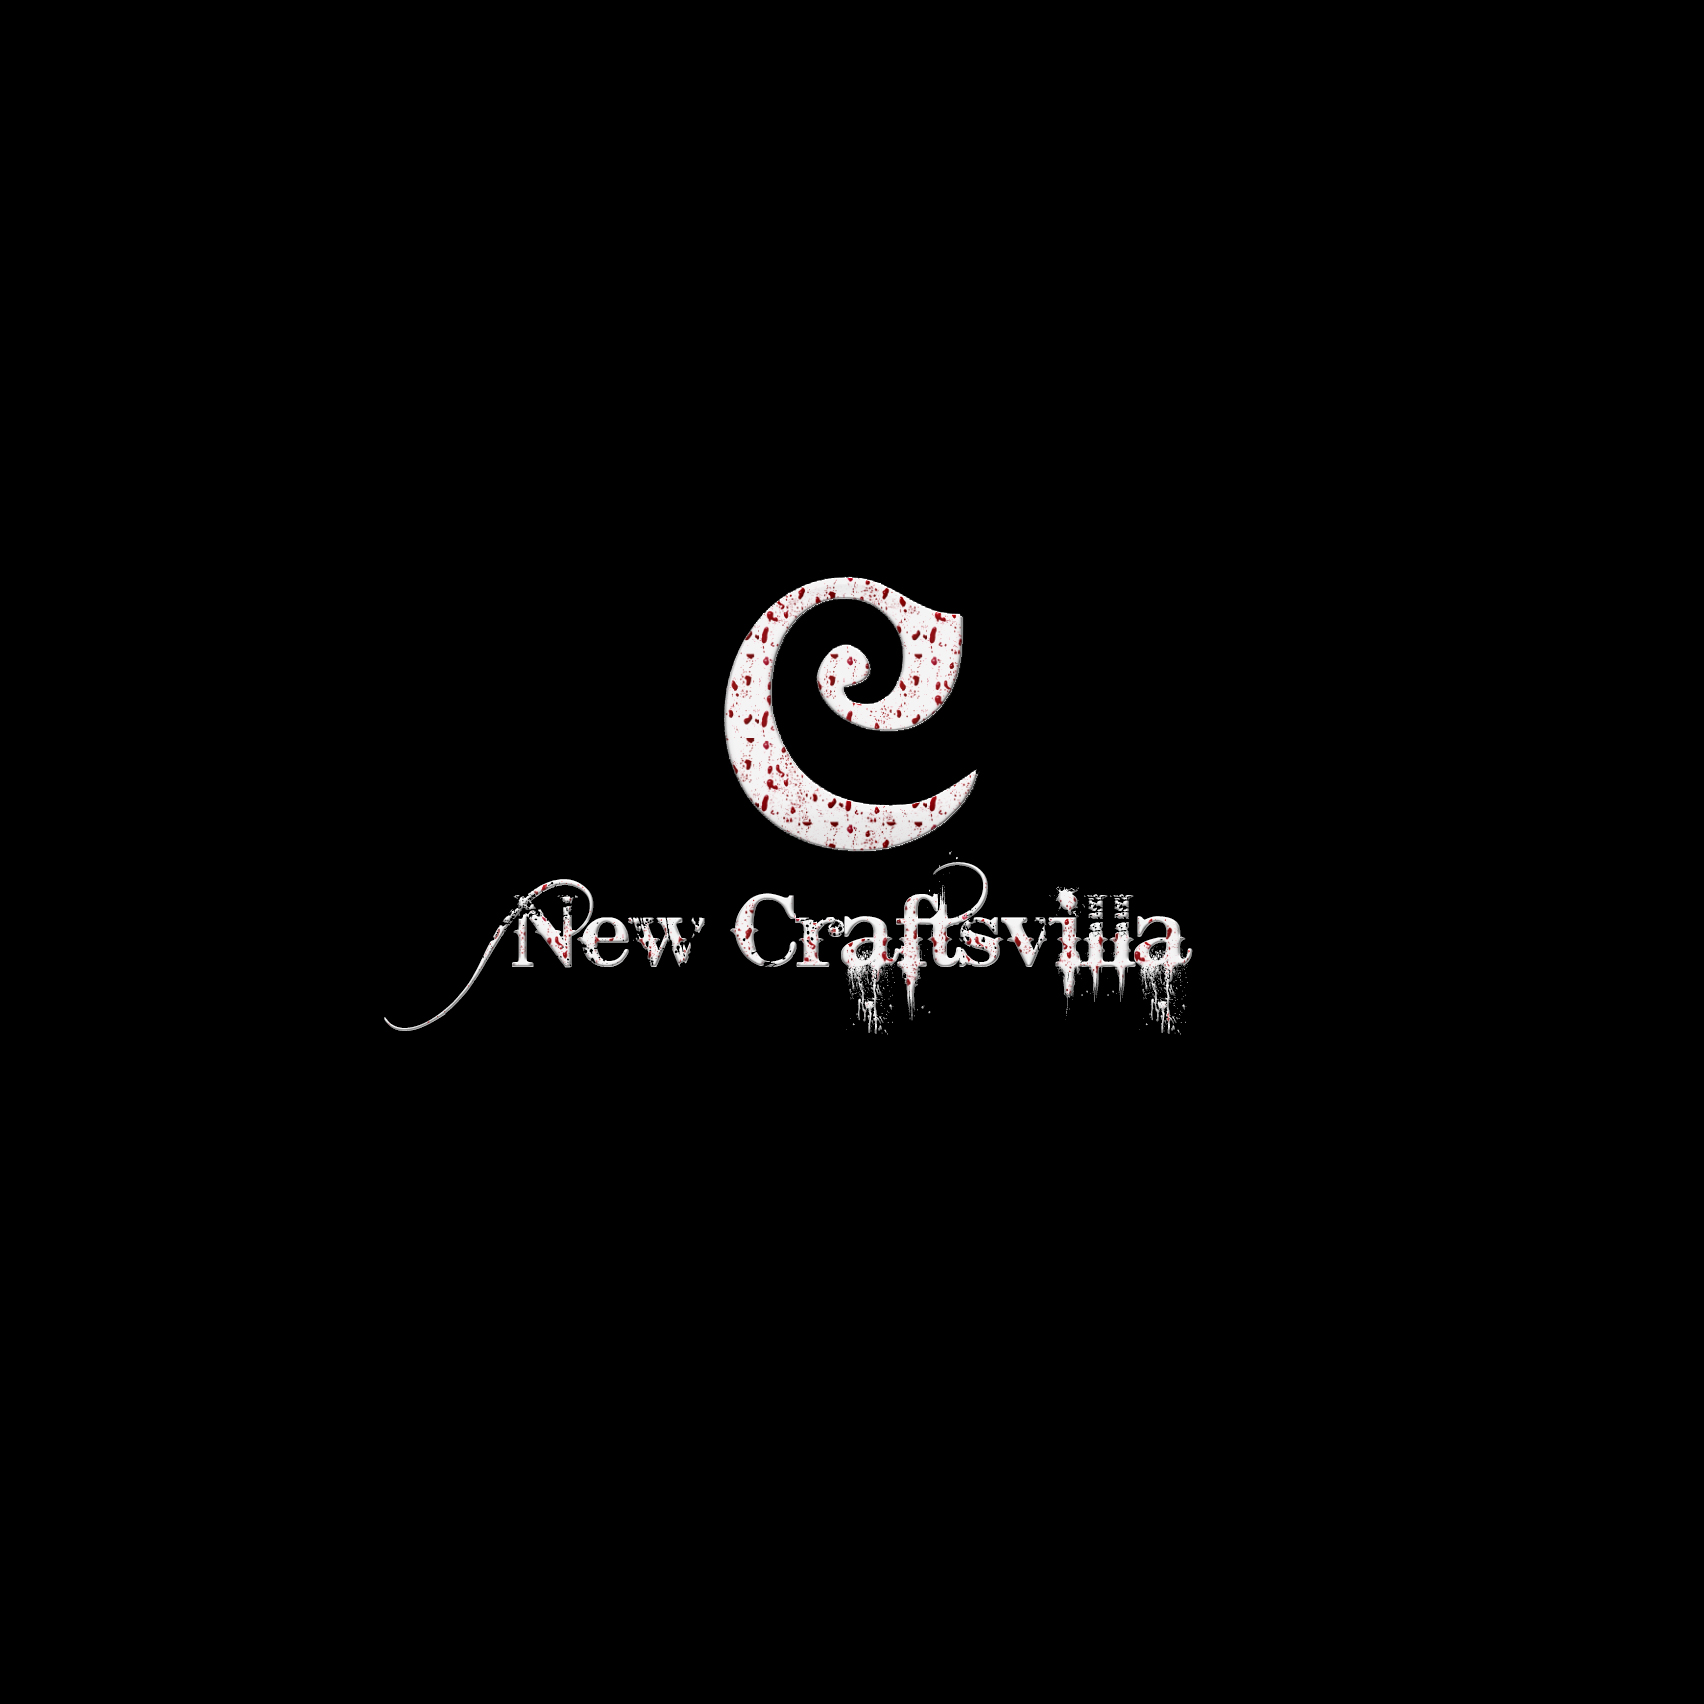 New Craftsvilla - logo